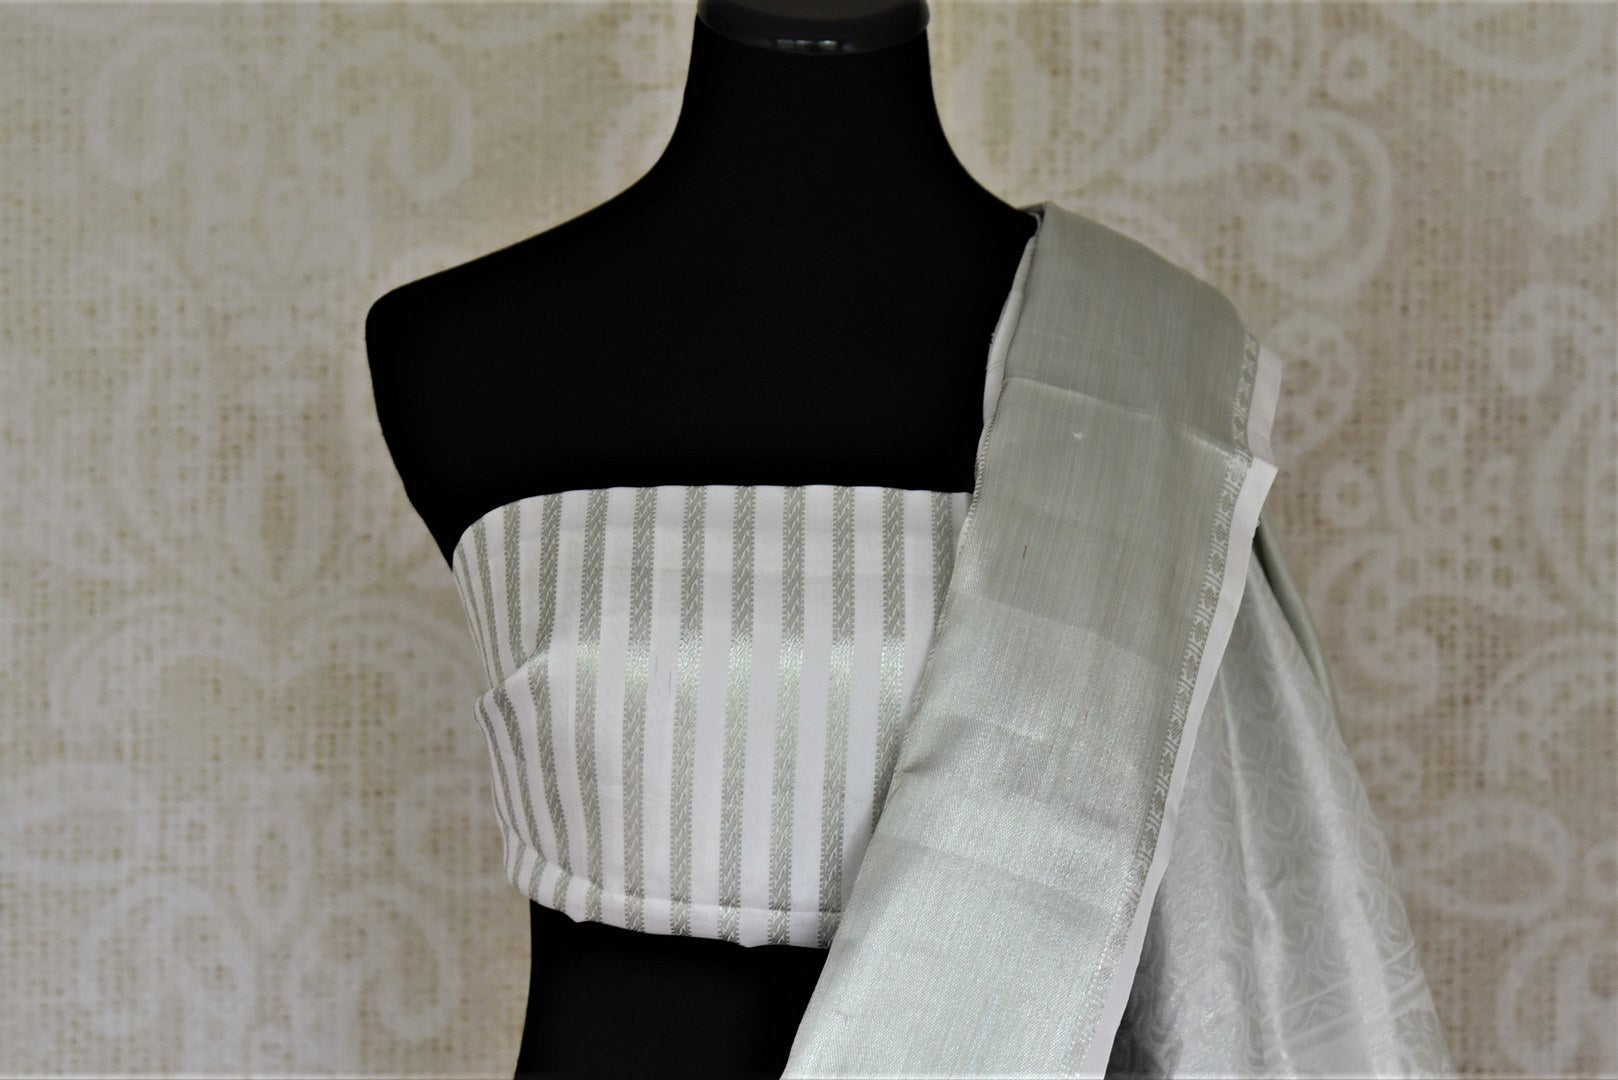 Shop elegant white zari stripes Kanjivaram sari online in USA. Let your elegance be the highlight of every occasion with stunning handwoven sarees, soft silk sarees, traditional Kanchipuram sarees from Pure Elegance Indian fashion boutique in USA.-blouse pallu